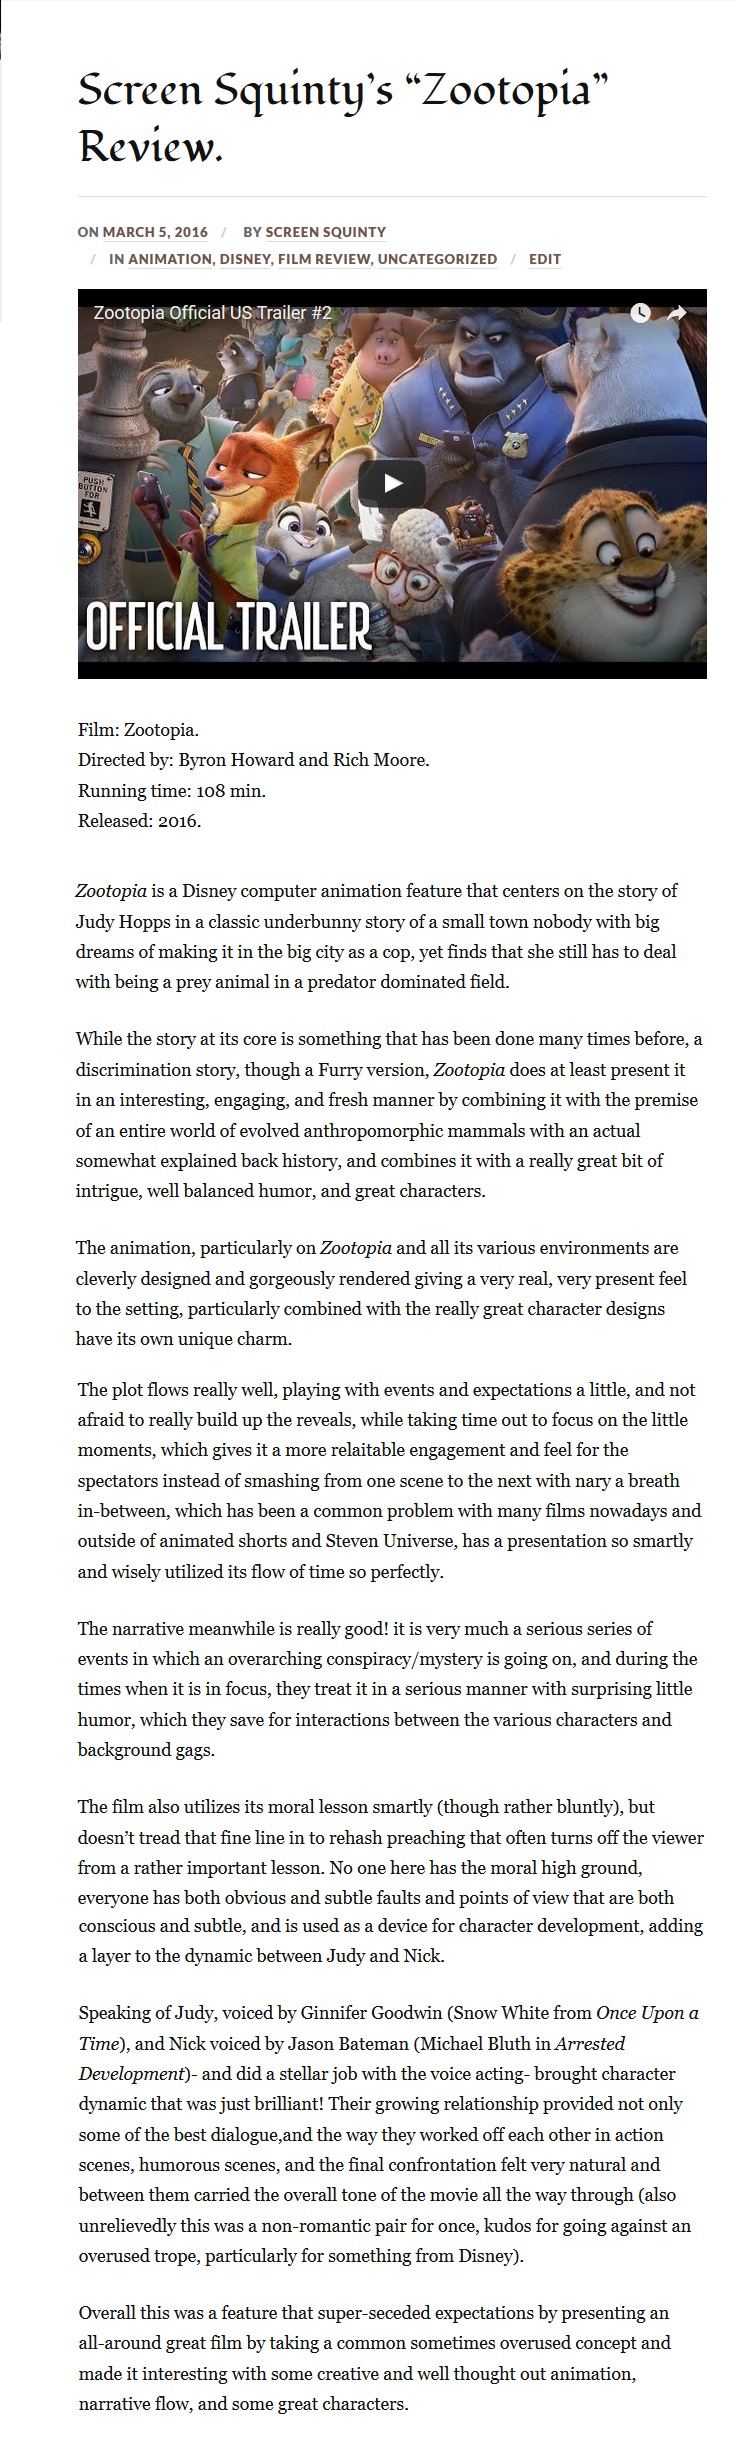 Screen Squinty's Review of Zootopia (sample) by ScreenSquinty.deviantart.com on @DeviantArt